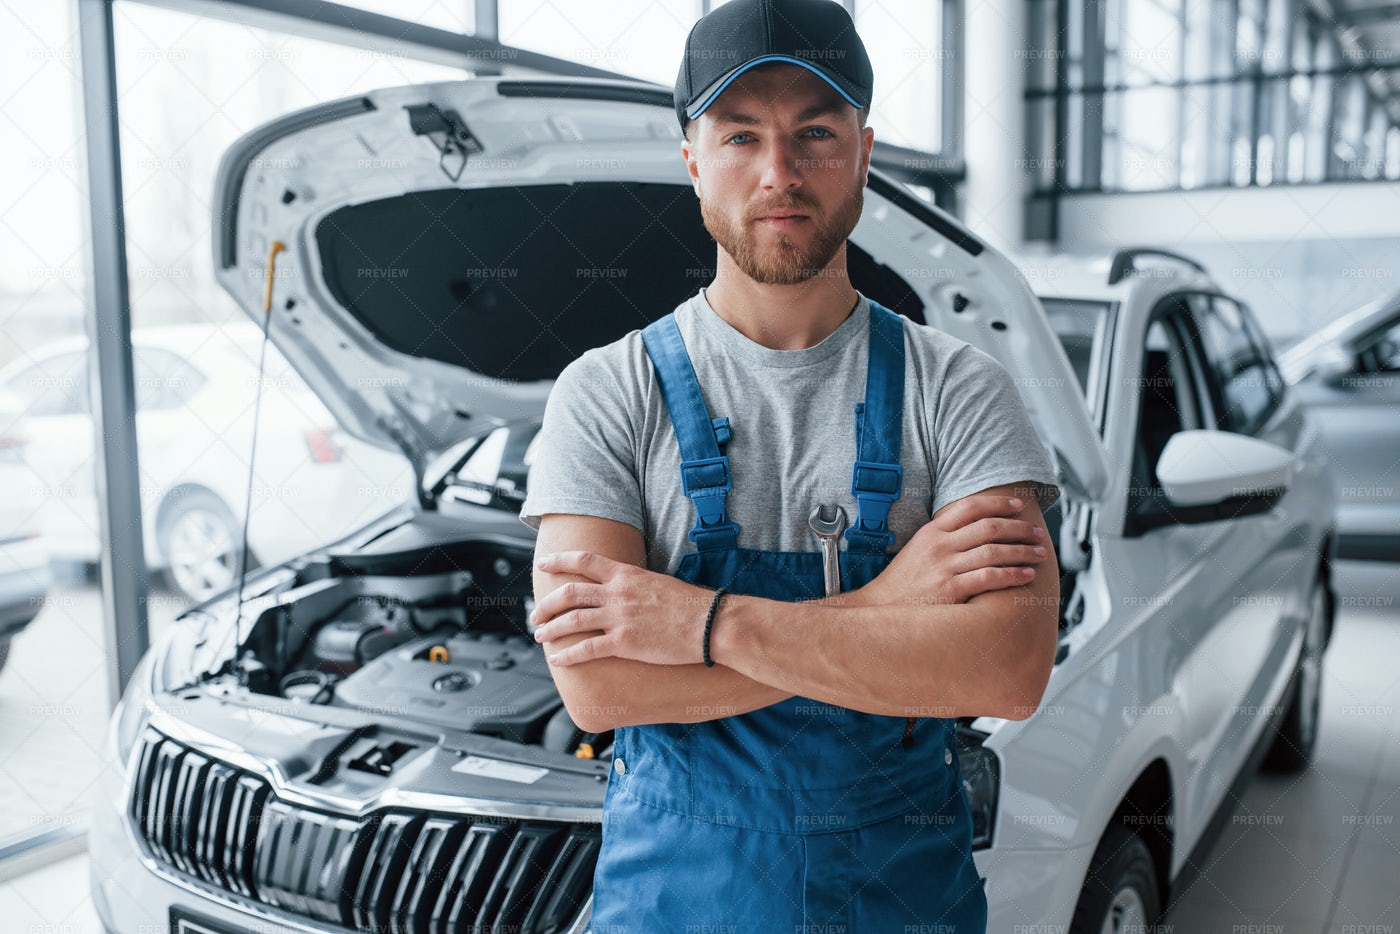 Employee In Blue Colored Uniform: Stock Photos